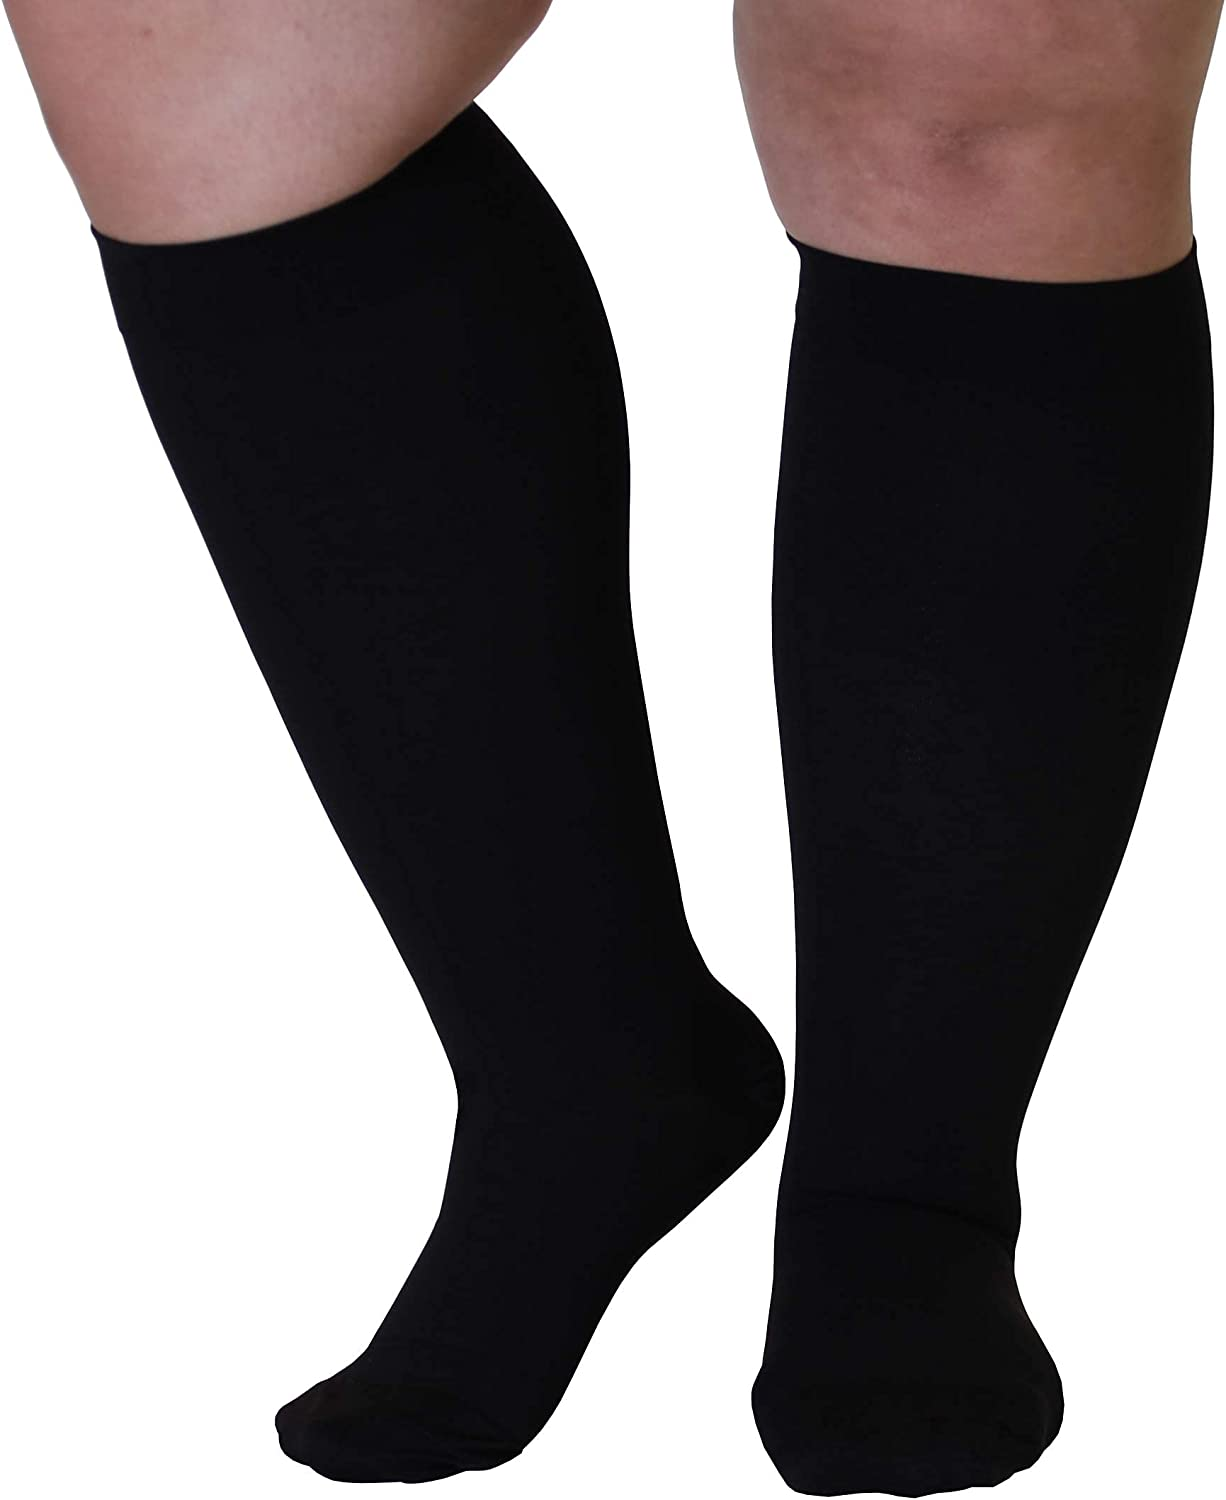 5XL safety Free shipping / New Mojo Compression Socks 20-30mmHg Ankle for Extra XX-Wide Cal